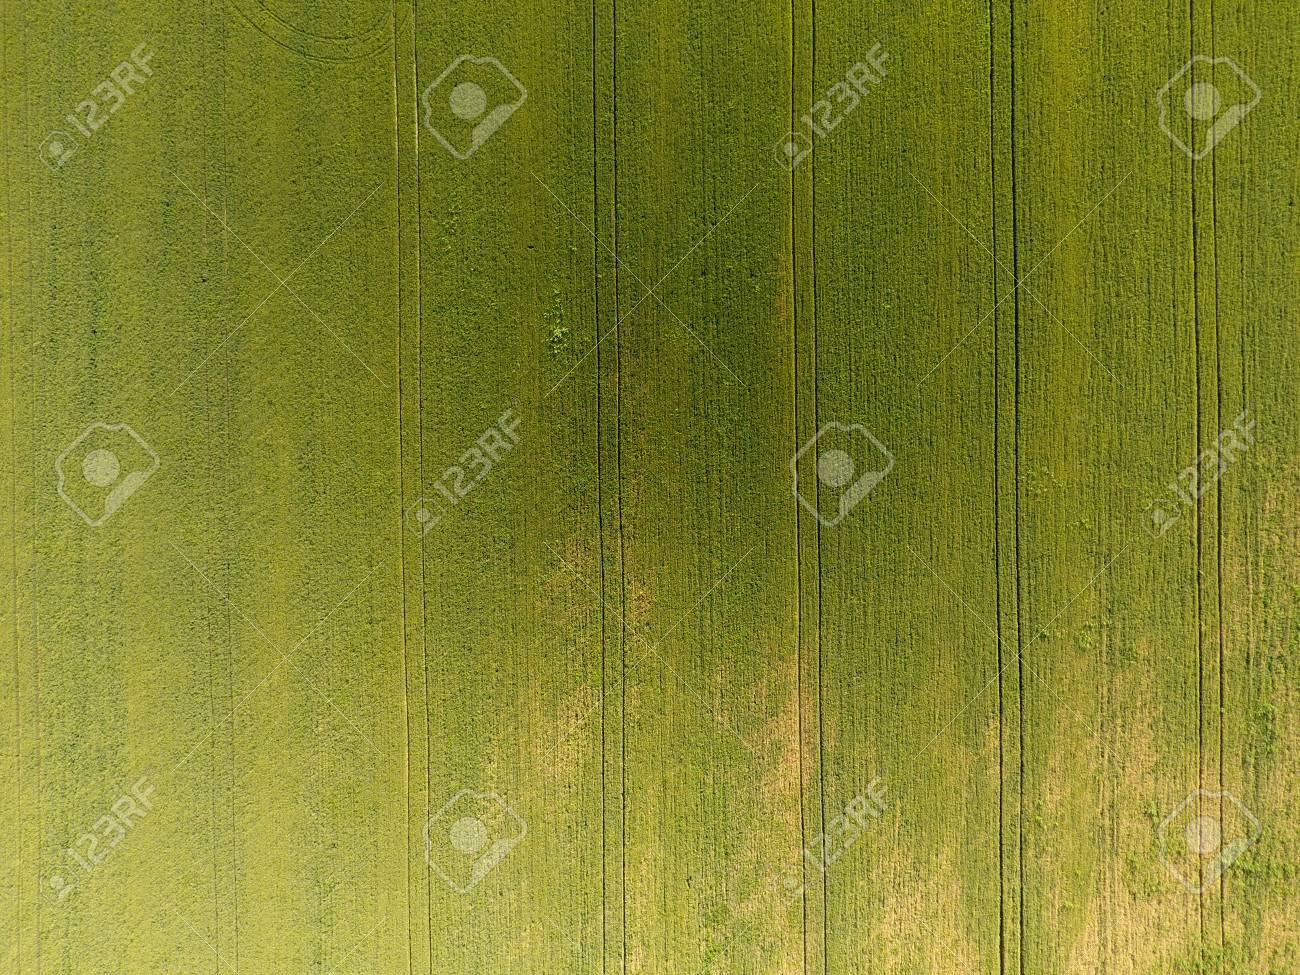 Texture Of Wheat Field Background Of Young Green Wheat On The 1300x975